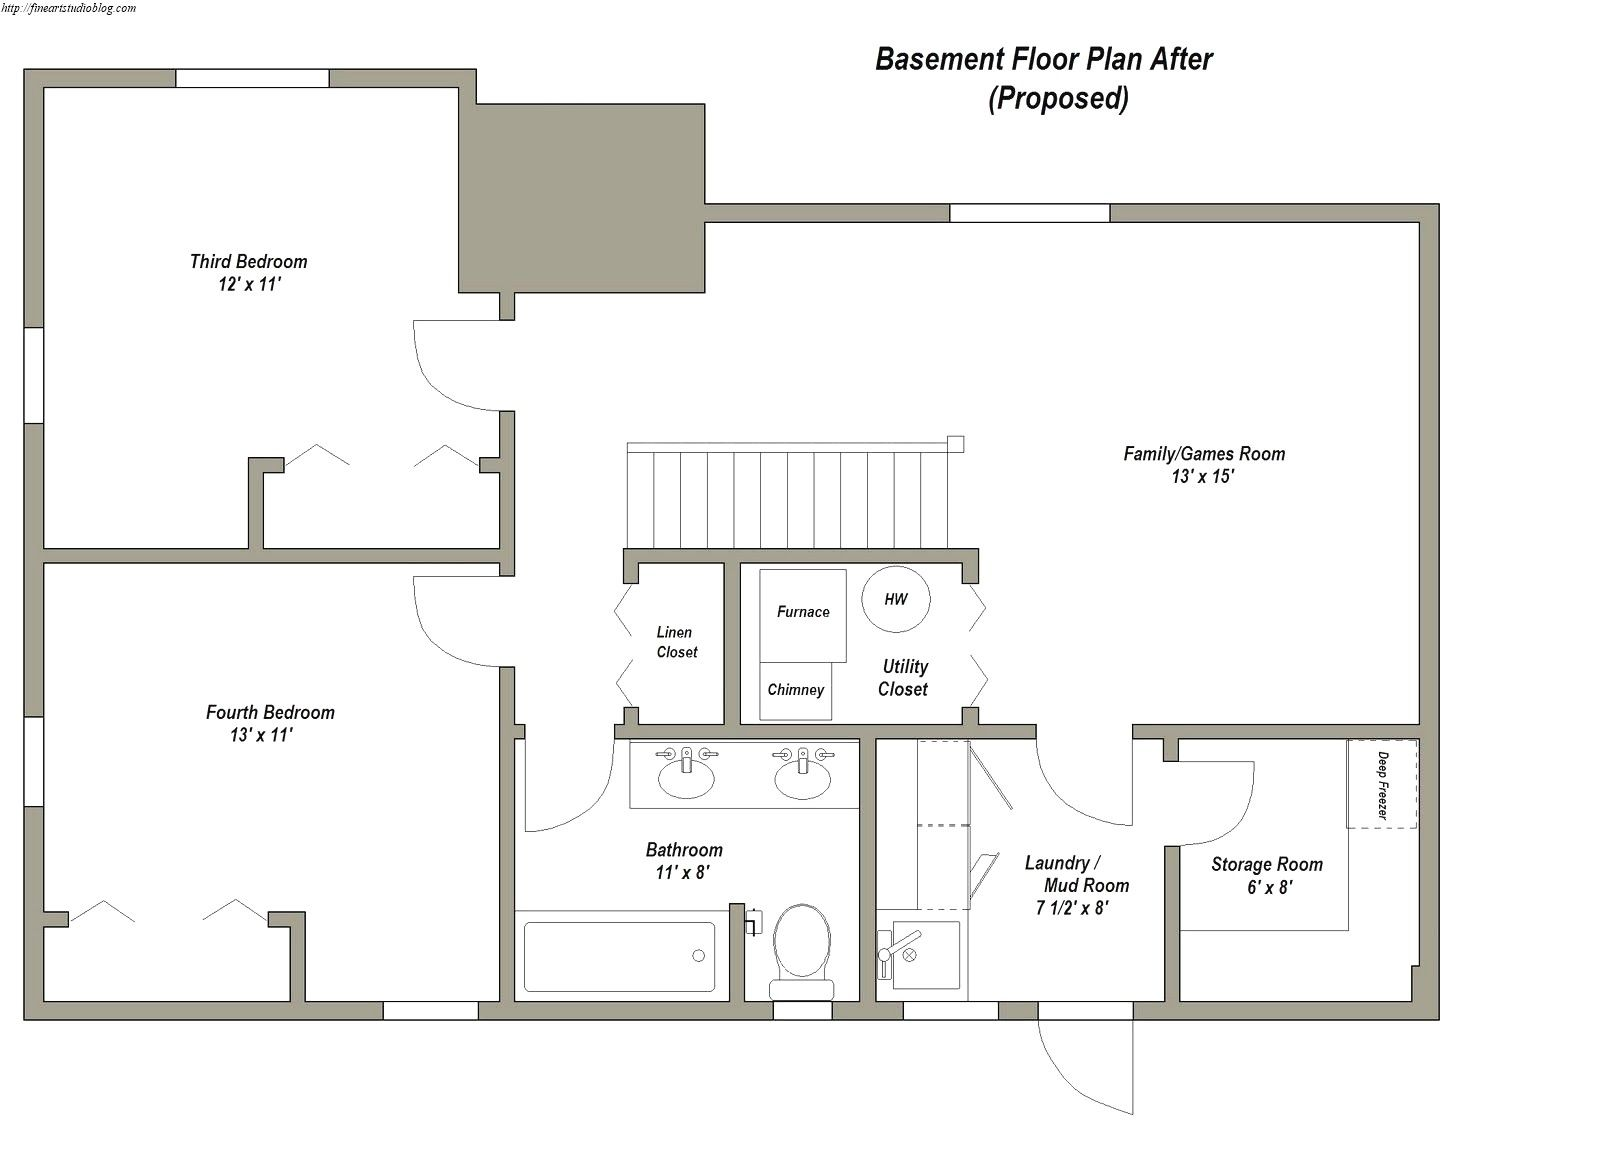 37 Marvelous Basement Design Plans Concept In 2020 Basement Floor Plans Basement Flooring Basement Design